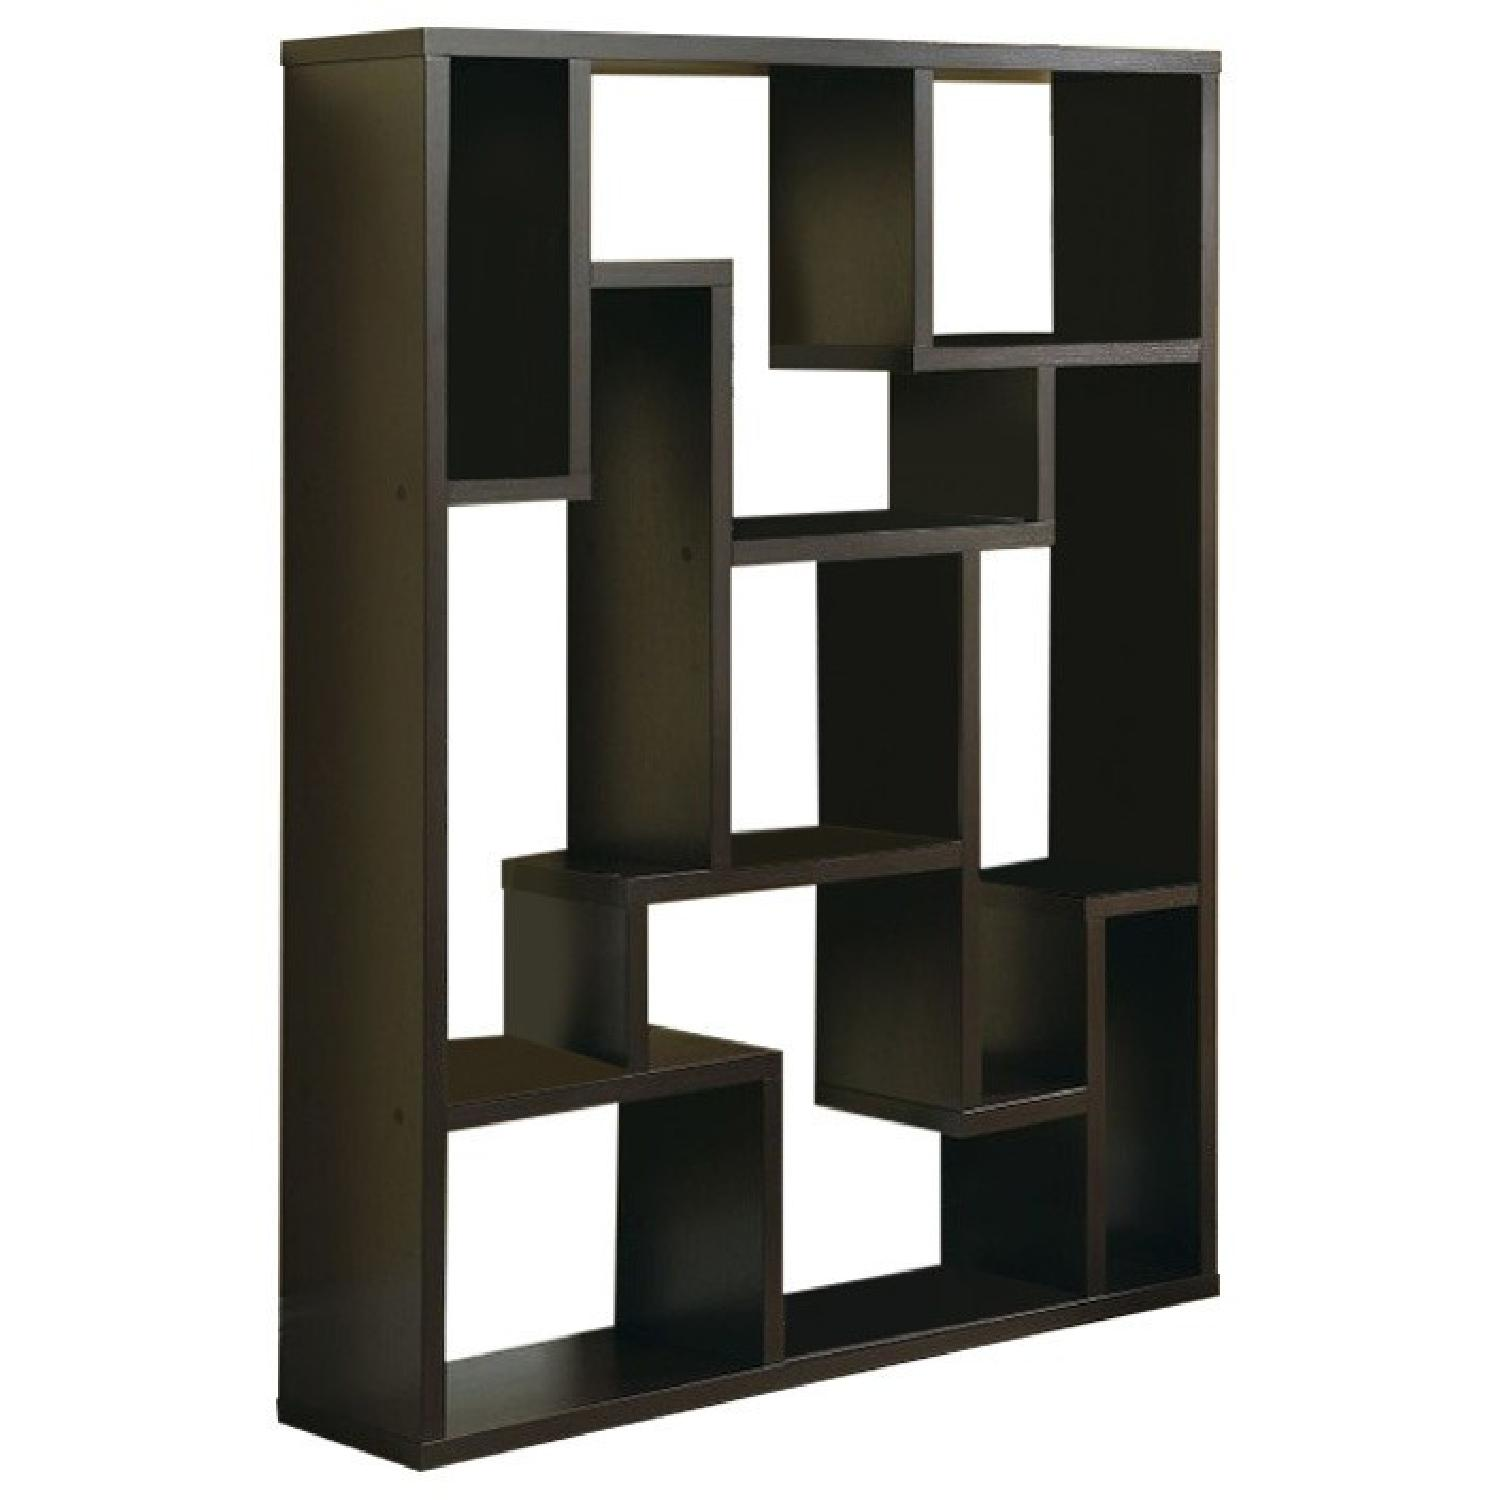 Contemporary Asymmetrical Bookshelf in Cappuccino Finish